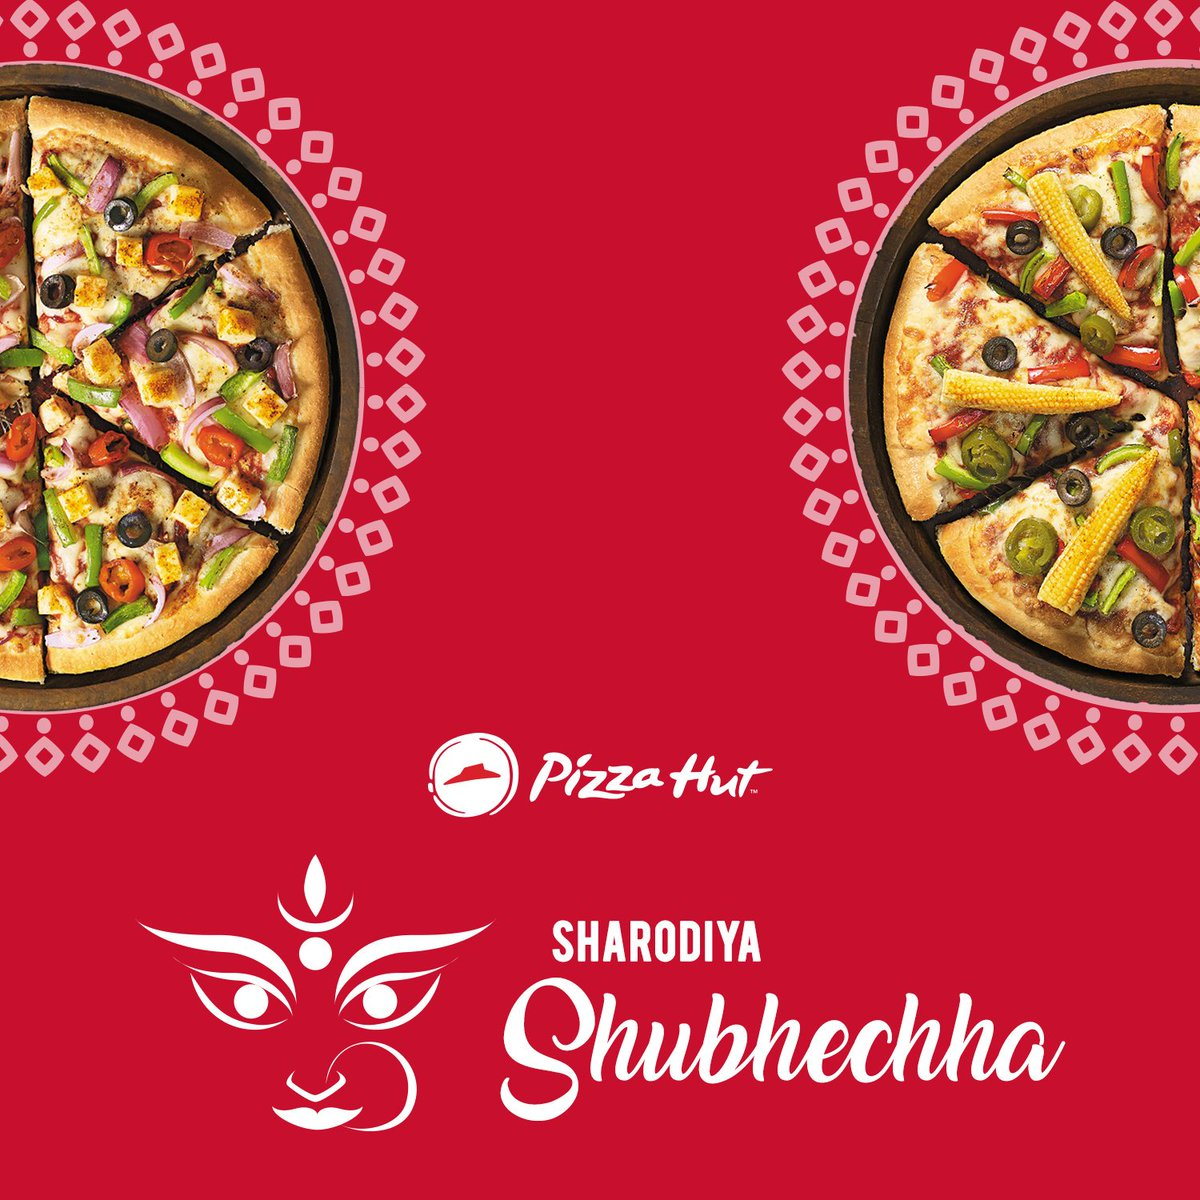 Pizza Hut wishing you all our patrons prosperous days ahead https t.co 3PPGLrKDK6